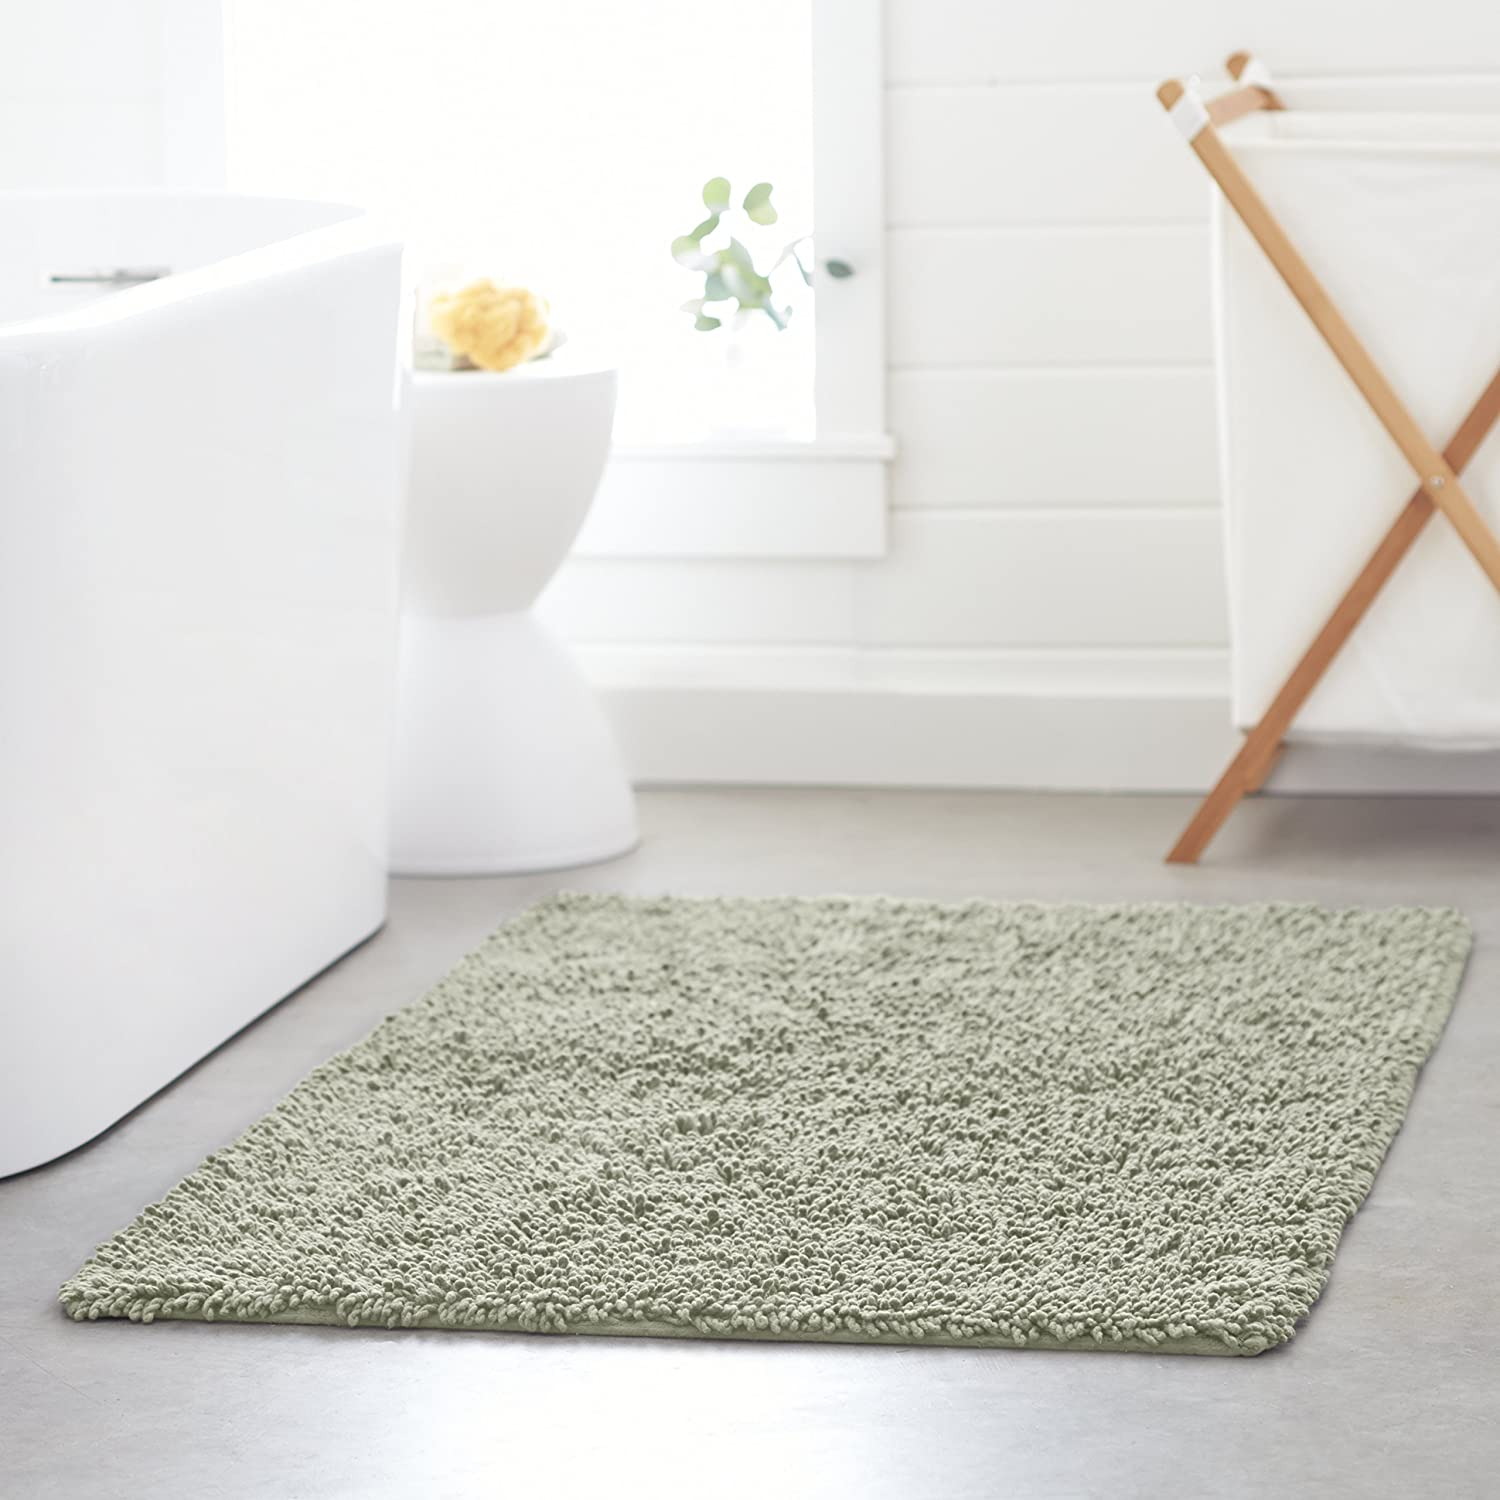 Amazoncom Pinzon Cotton Looped Bath Rug With NonSlip - Loop bath rug for bathroom decorating ideas